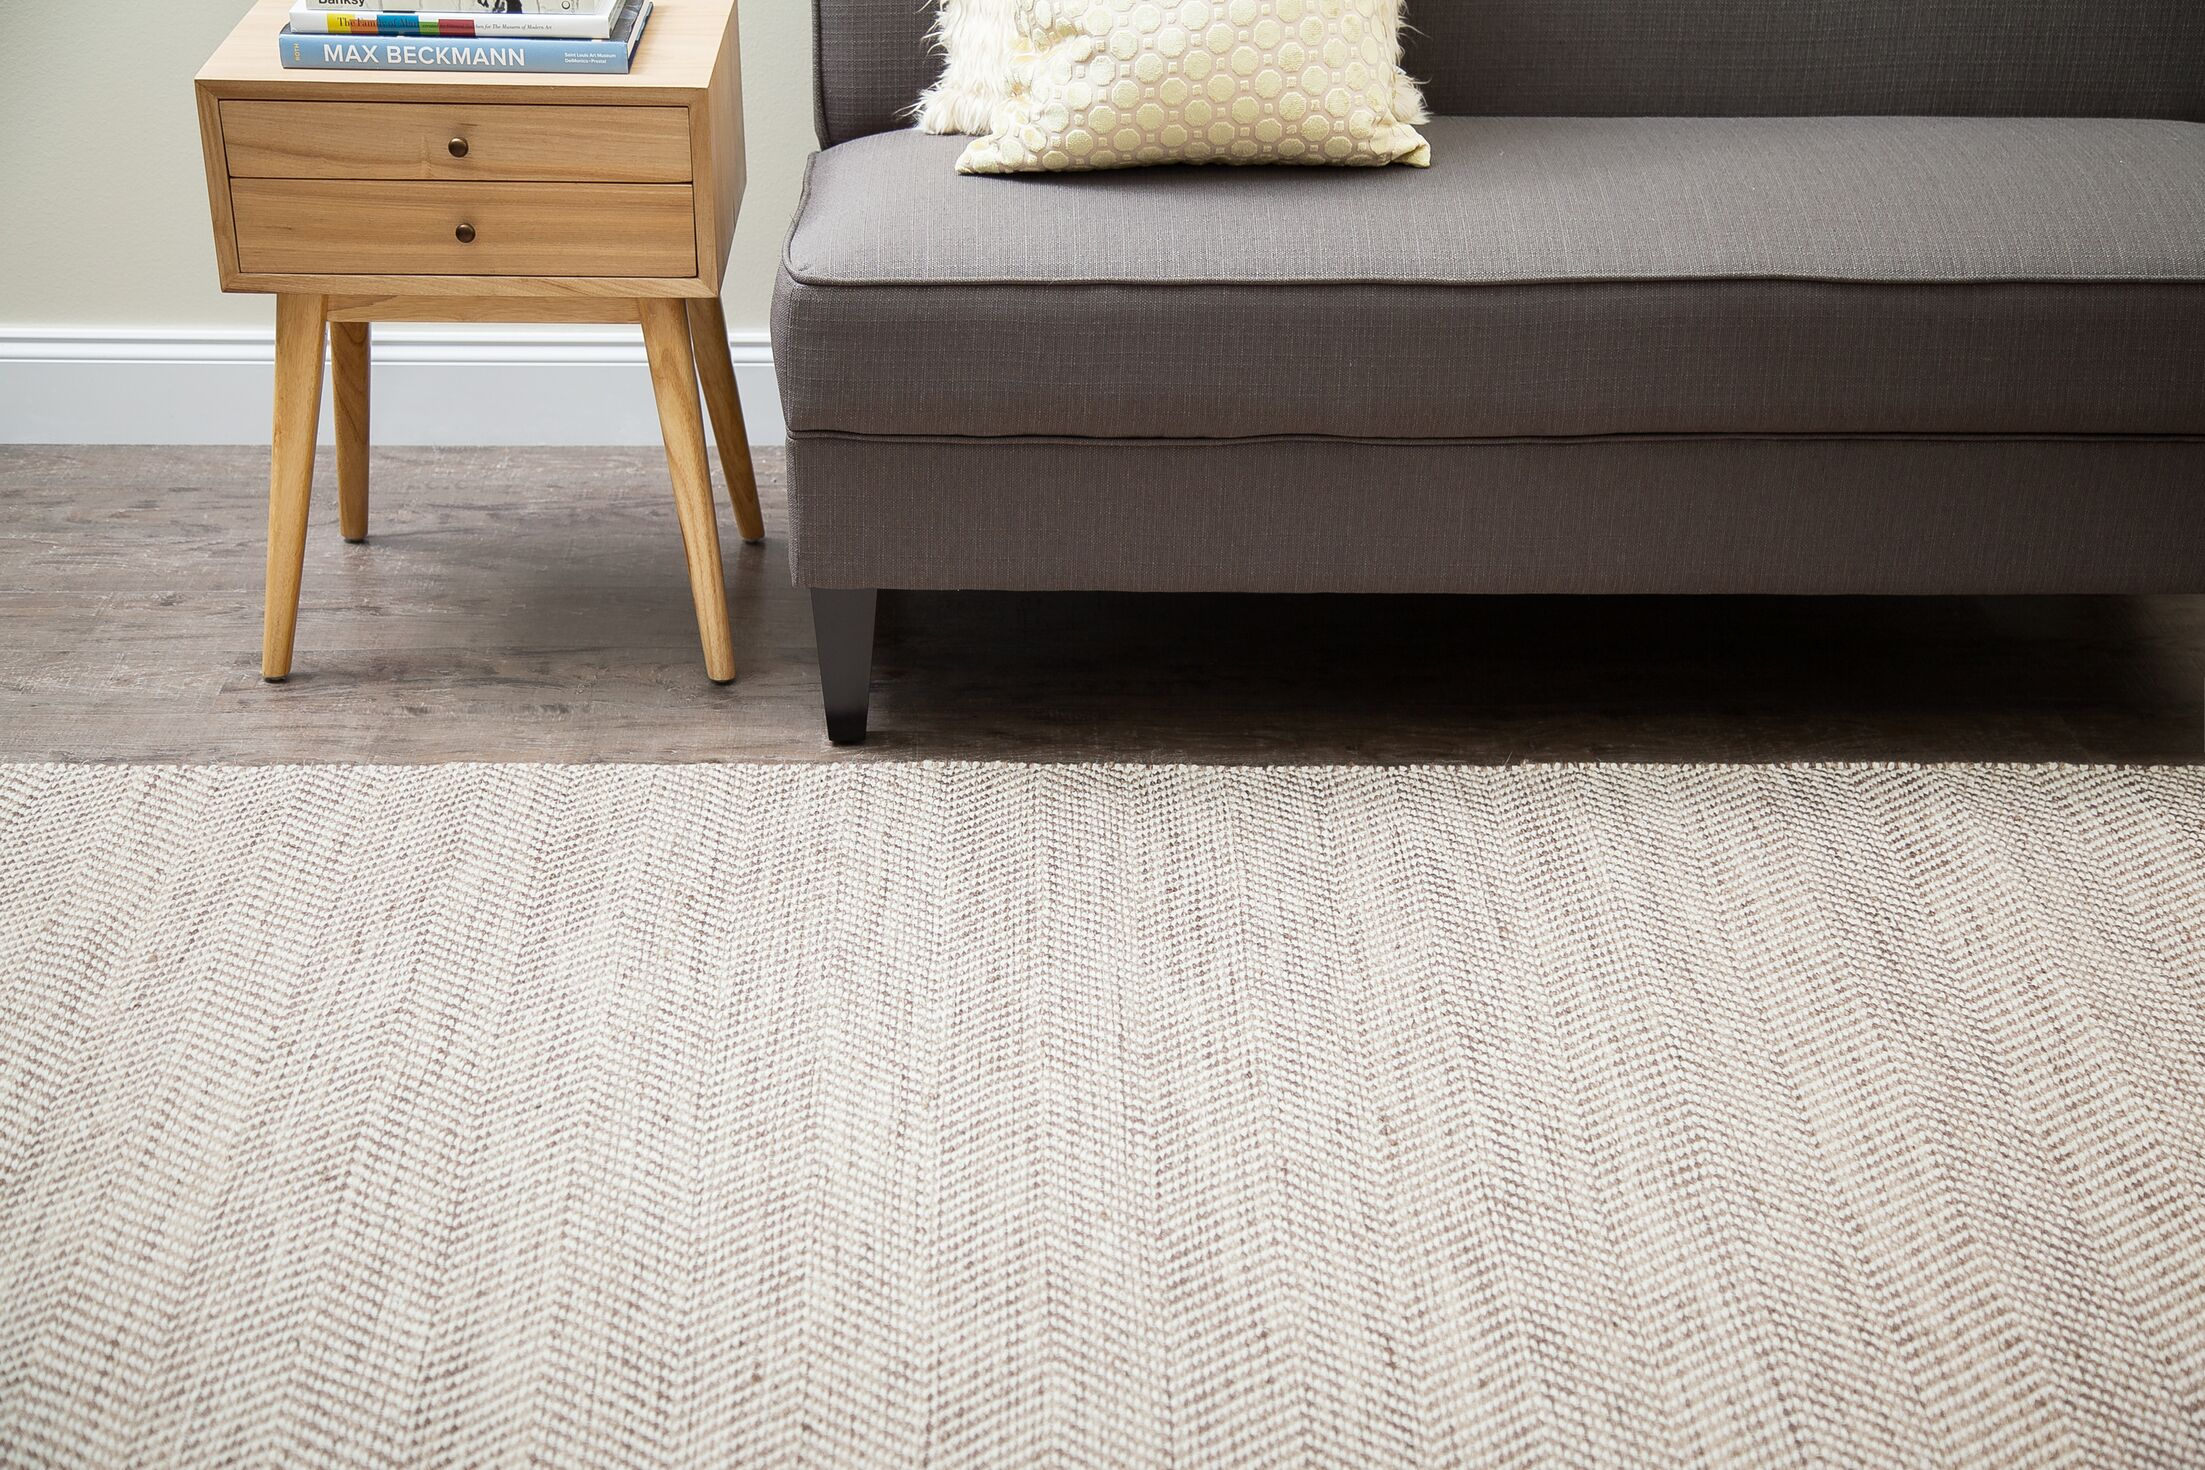 Clarington Hand-Woven Tan/Ivory Area Rug Rug Size: Runner 2'6